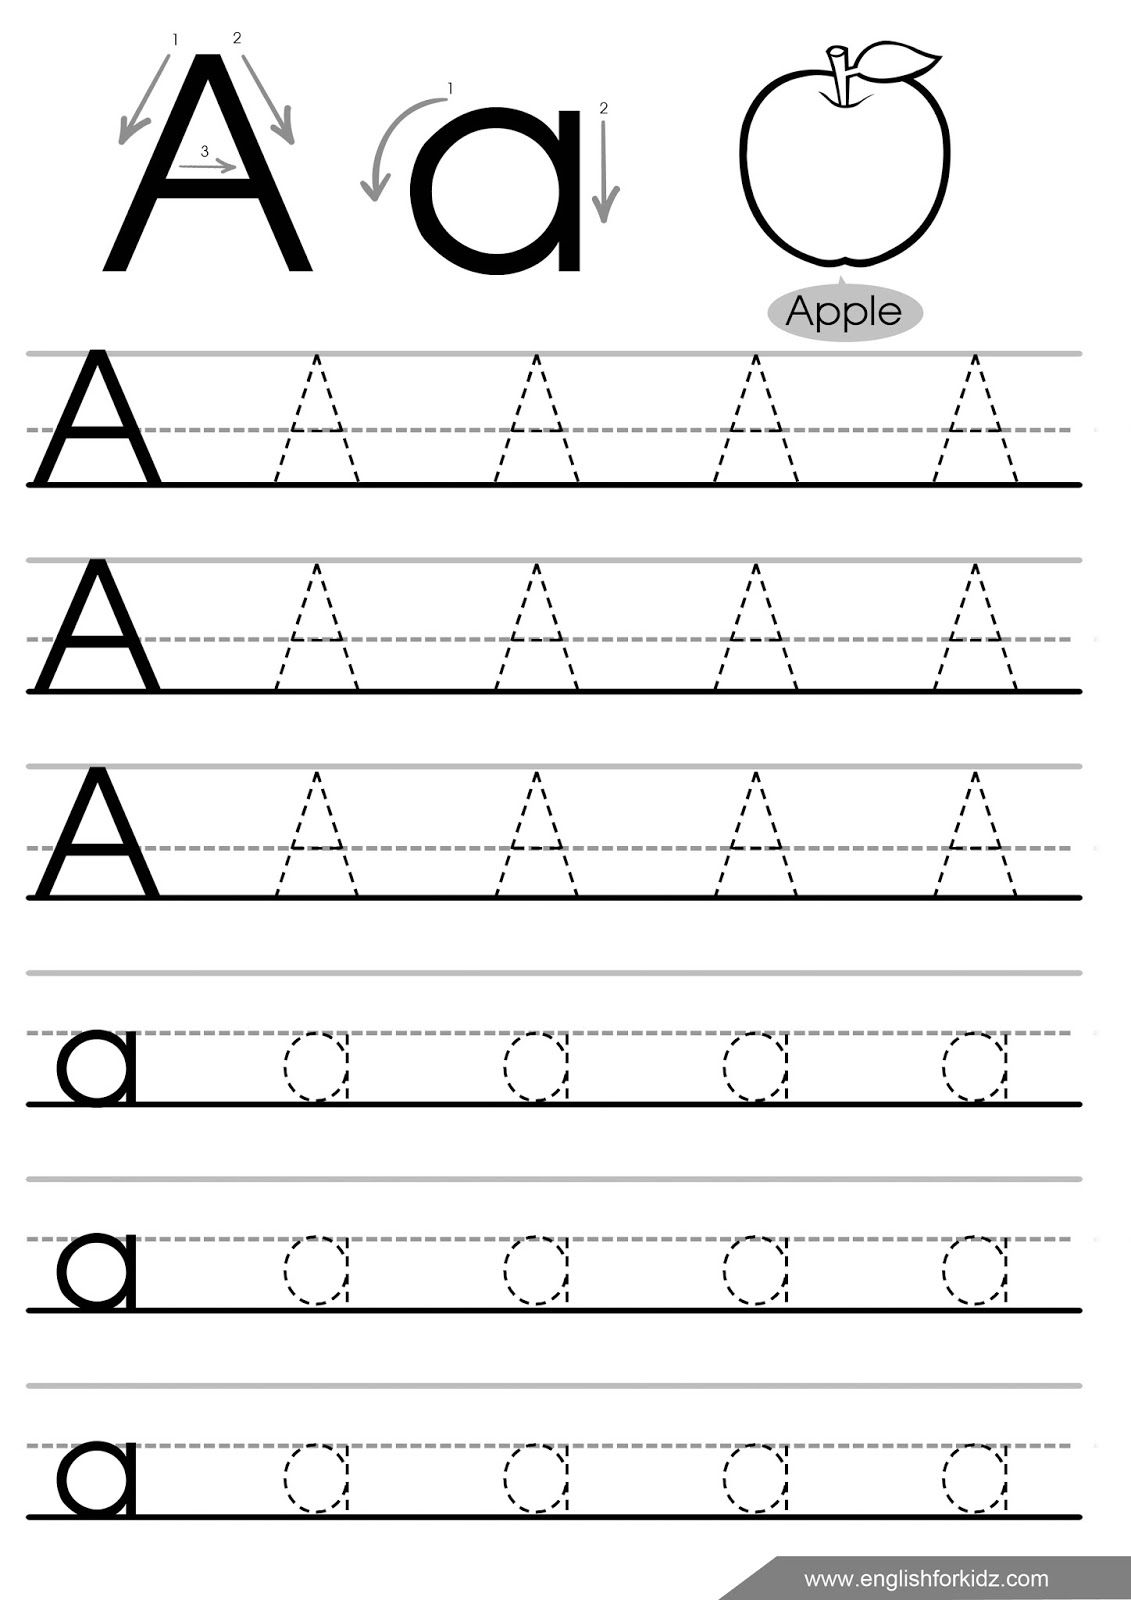 worksheet Tracing Letter Worksheets letter tracing worksheets fun for the kiddies pinterest worksheets